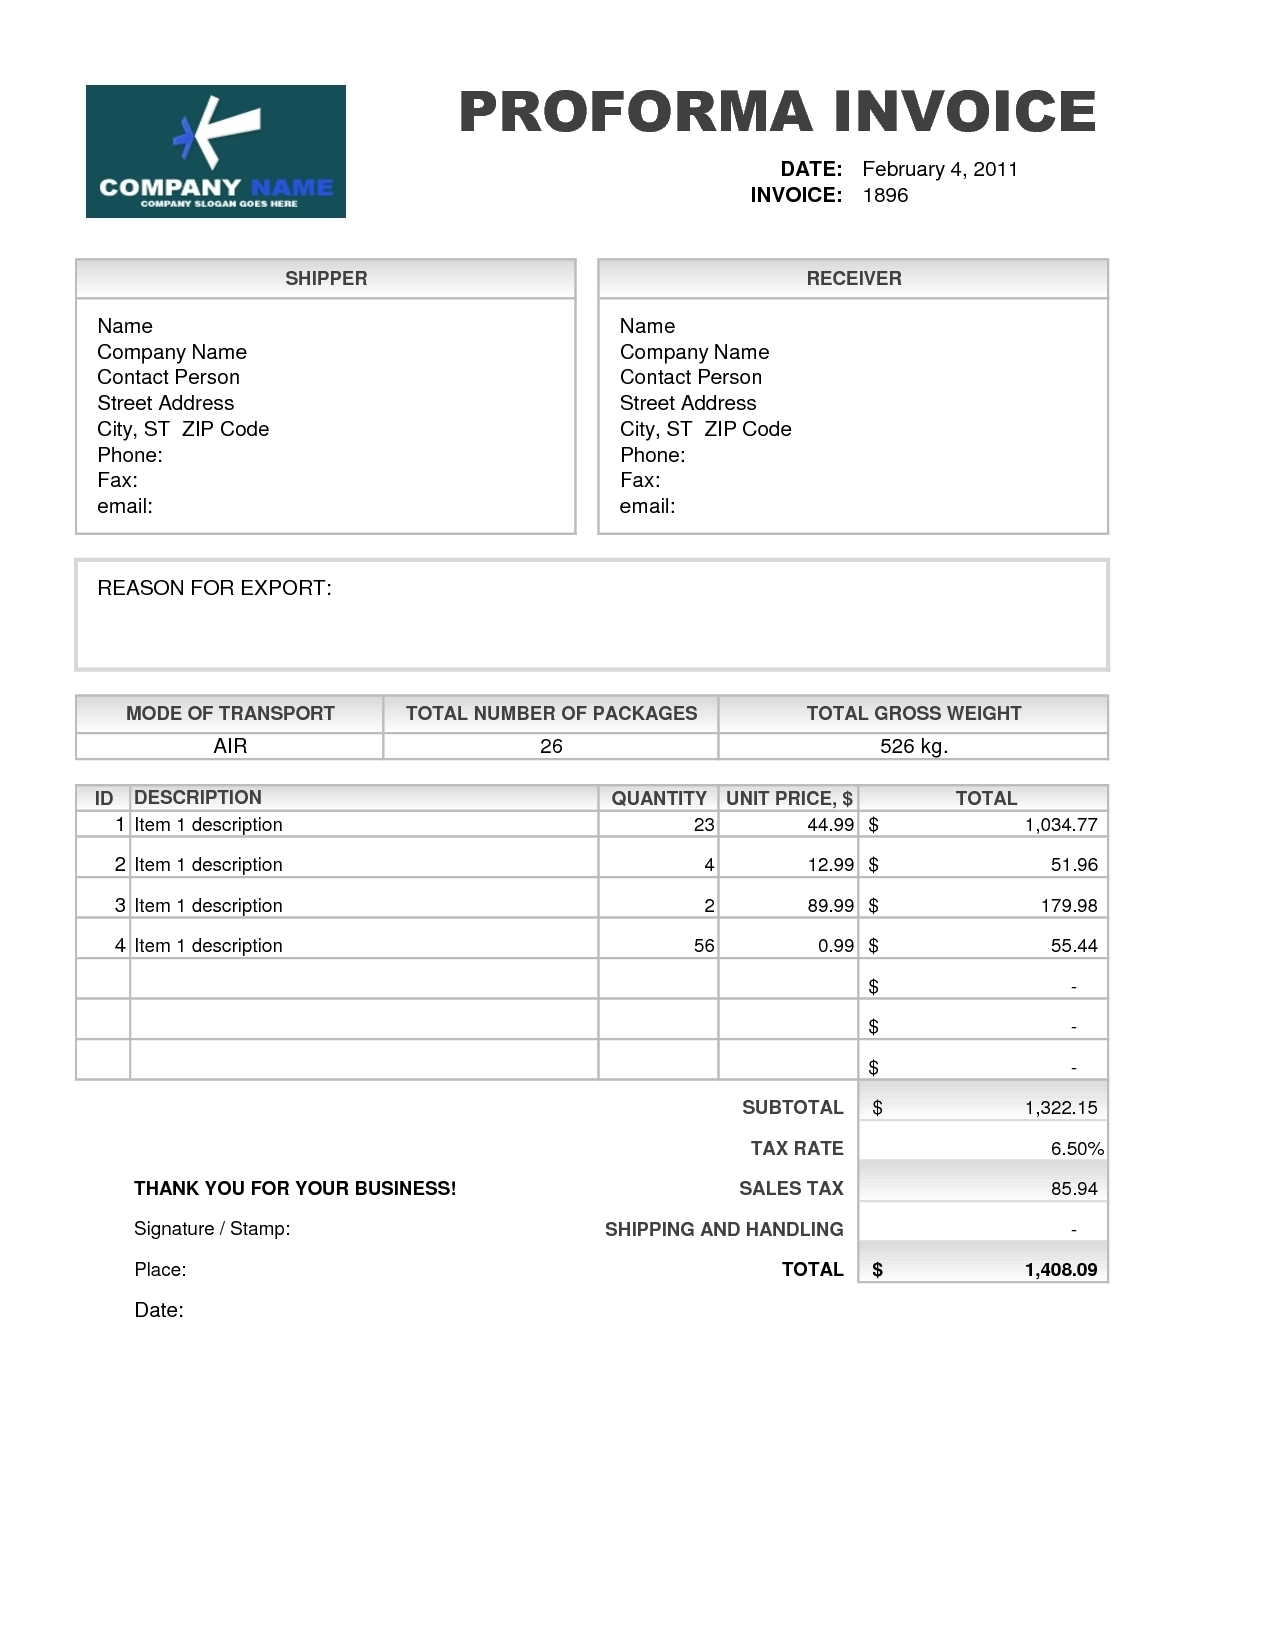 Sample Pro Forma Invoice Pertaminico - Home improvement invoice